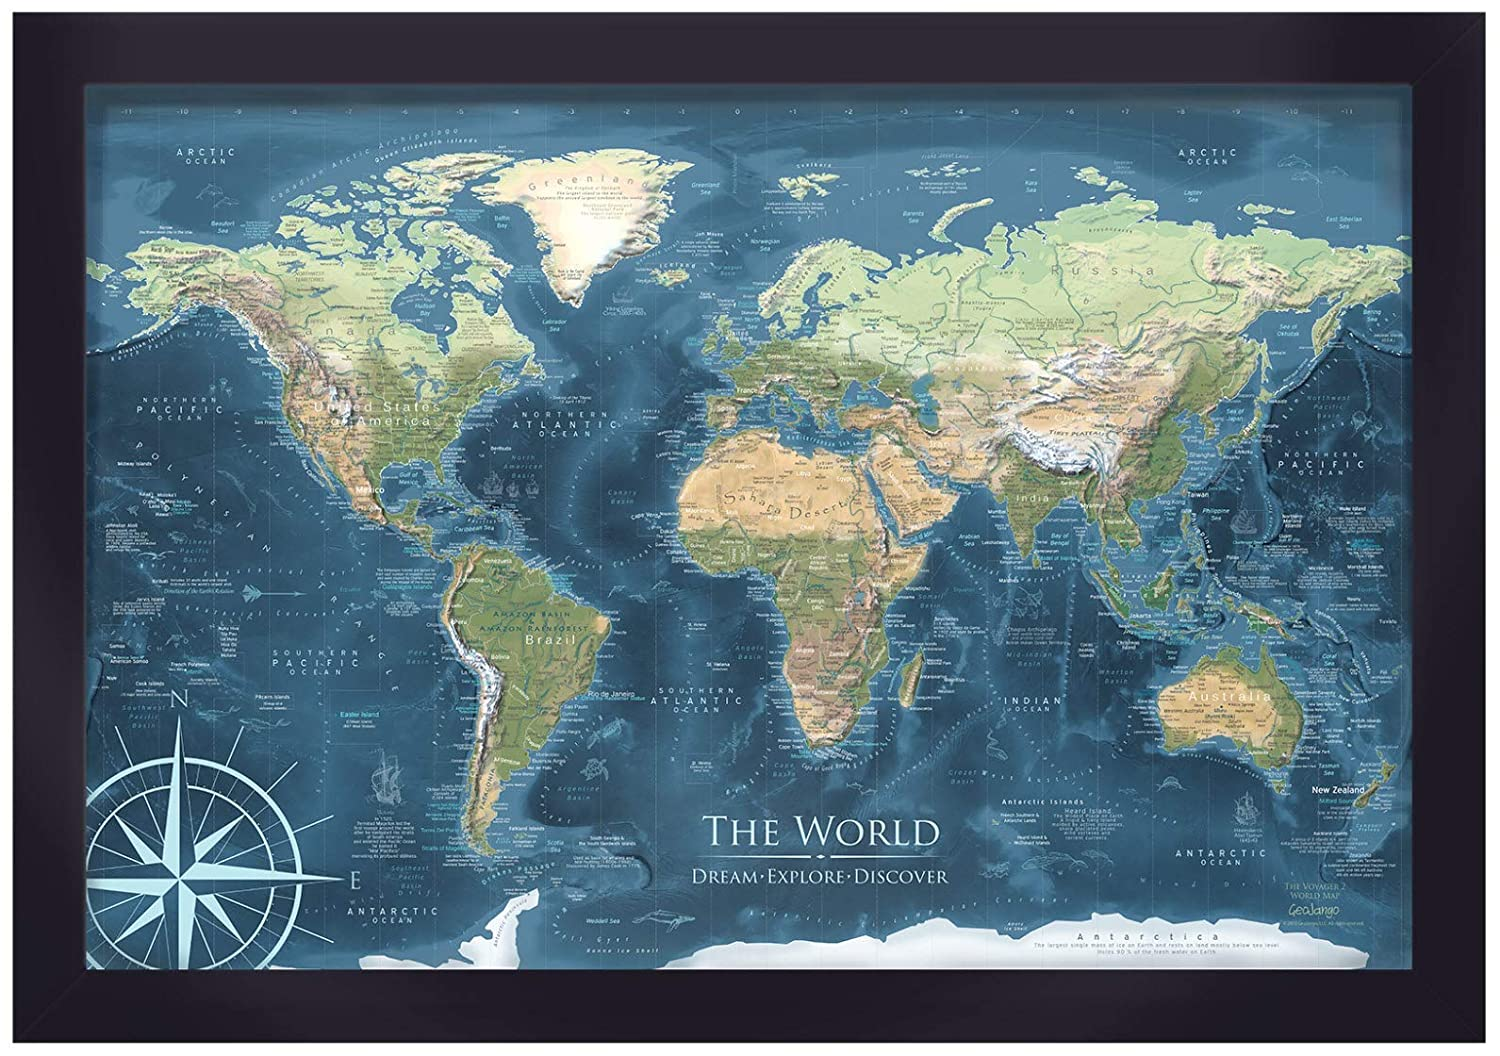 Executive Wall Map - World Push Pin Map - Voyager 1 World Map - 30x20 inch  map + frame + includes 100 map pins - Designed by a Professional Geographer